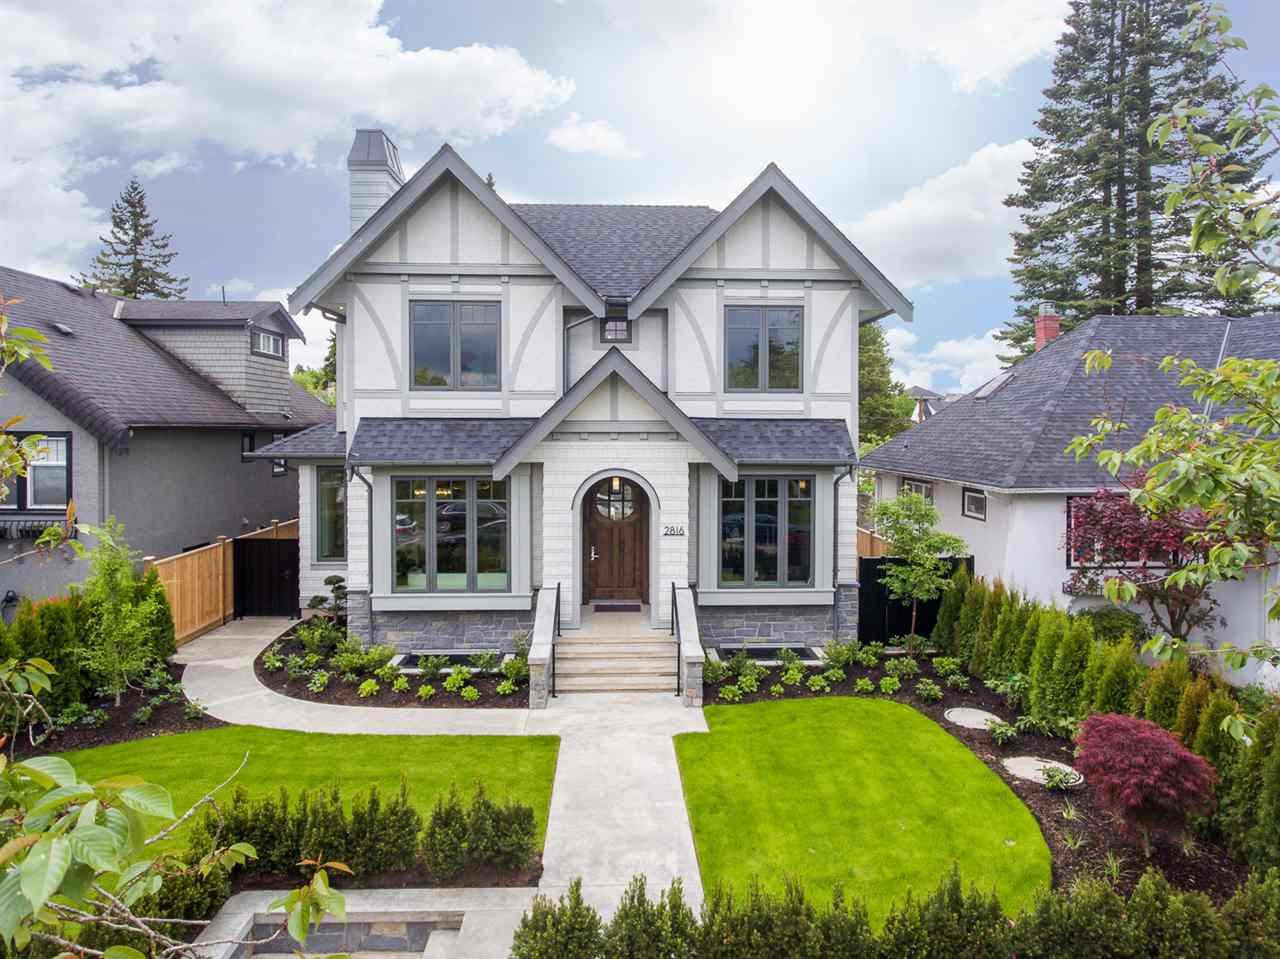 """Photo 4: Photos: 2816 W 30TH Avenue in Vancouver: MacKenzie Heights House for sale in """"MACKENZIE HEIGHTS"""" (Vancouver West)  : MLS®# R2456722"""